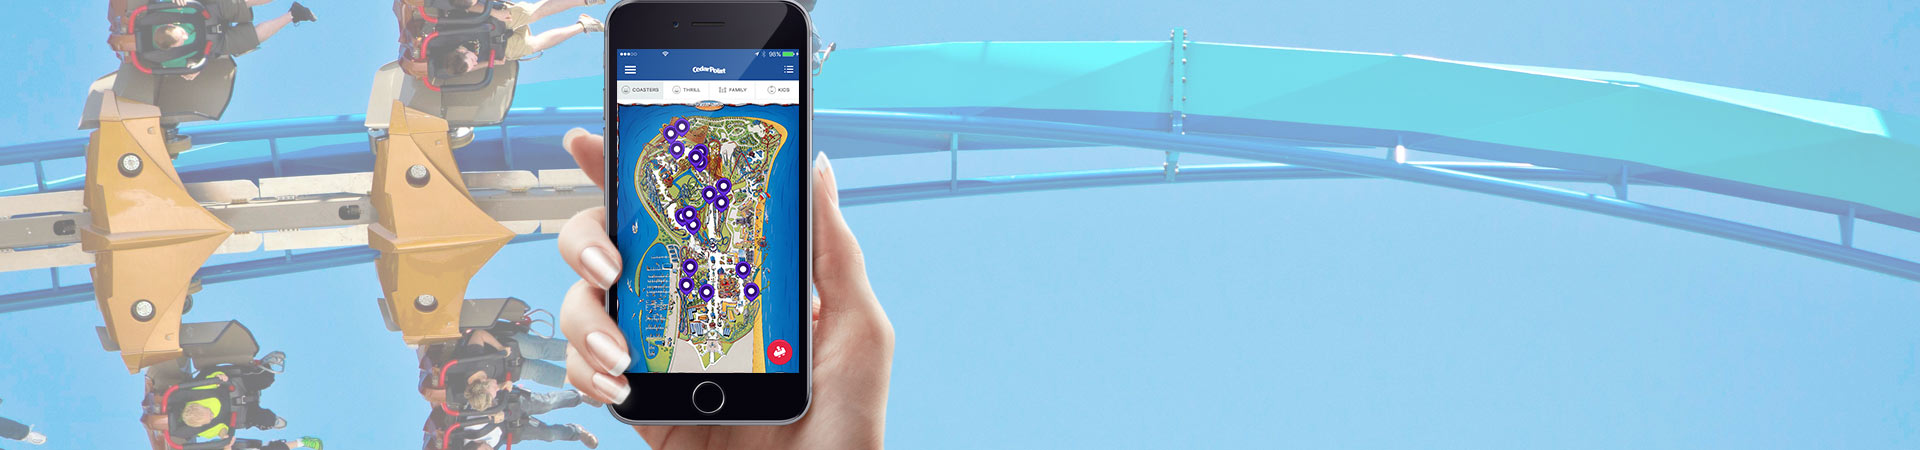 The Cedar Point Mobile App offers wait times, show times, special offers and more!